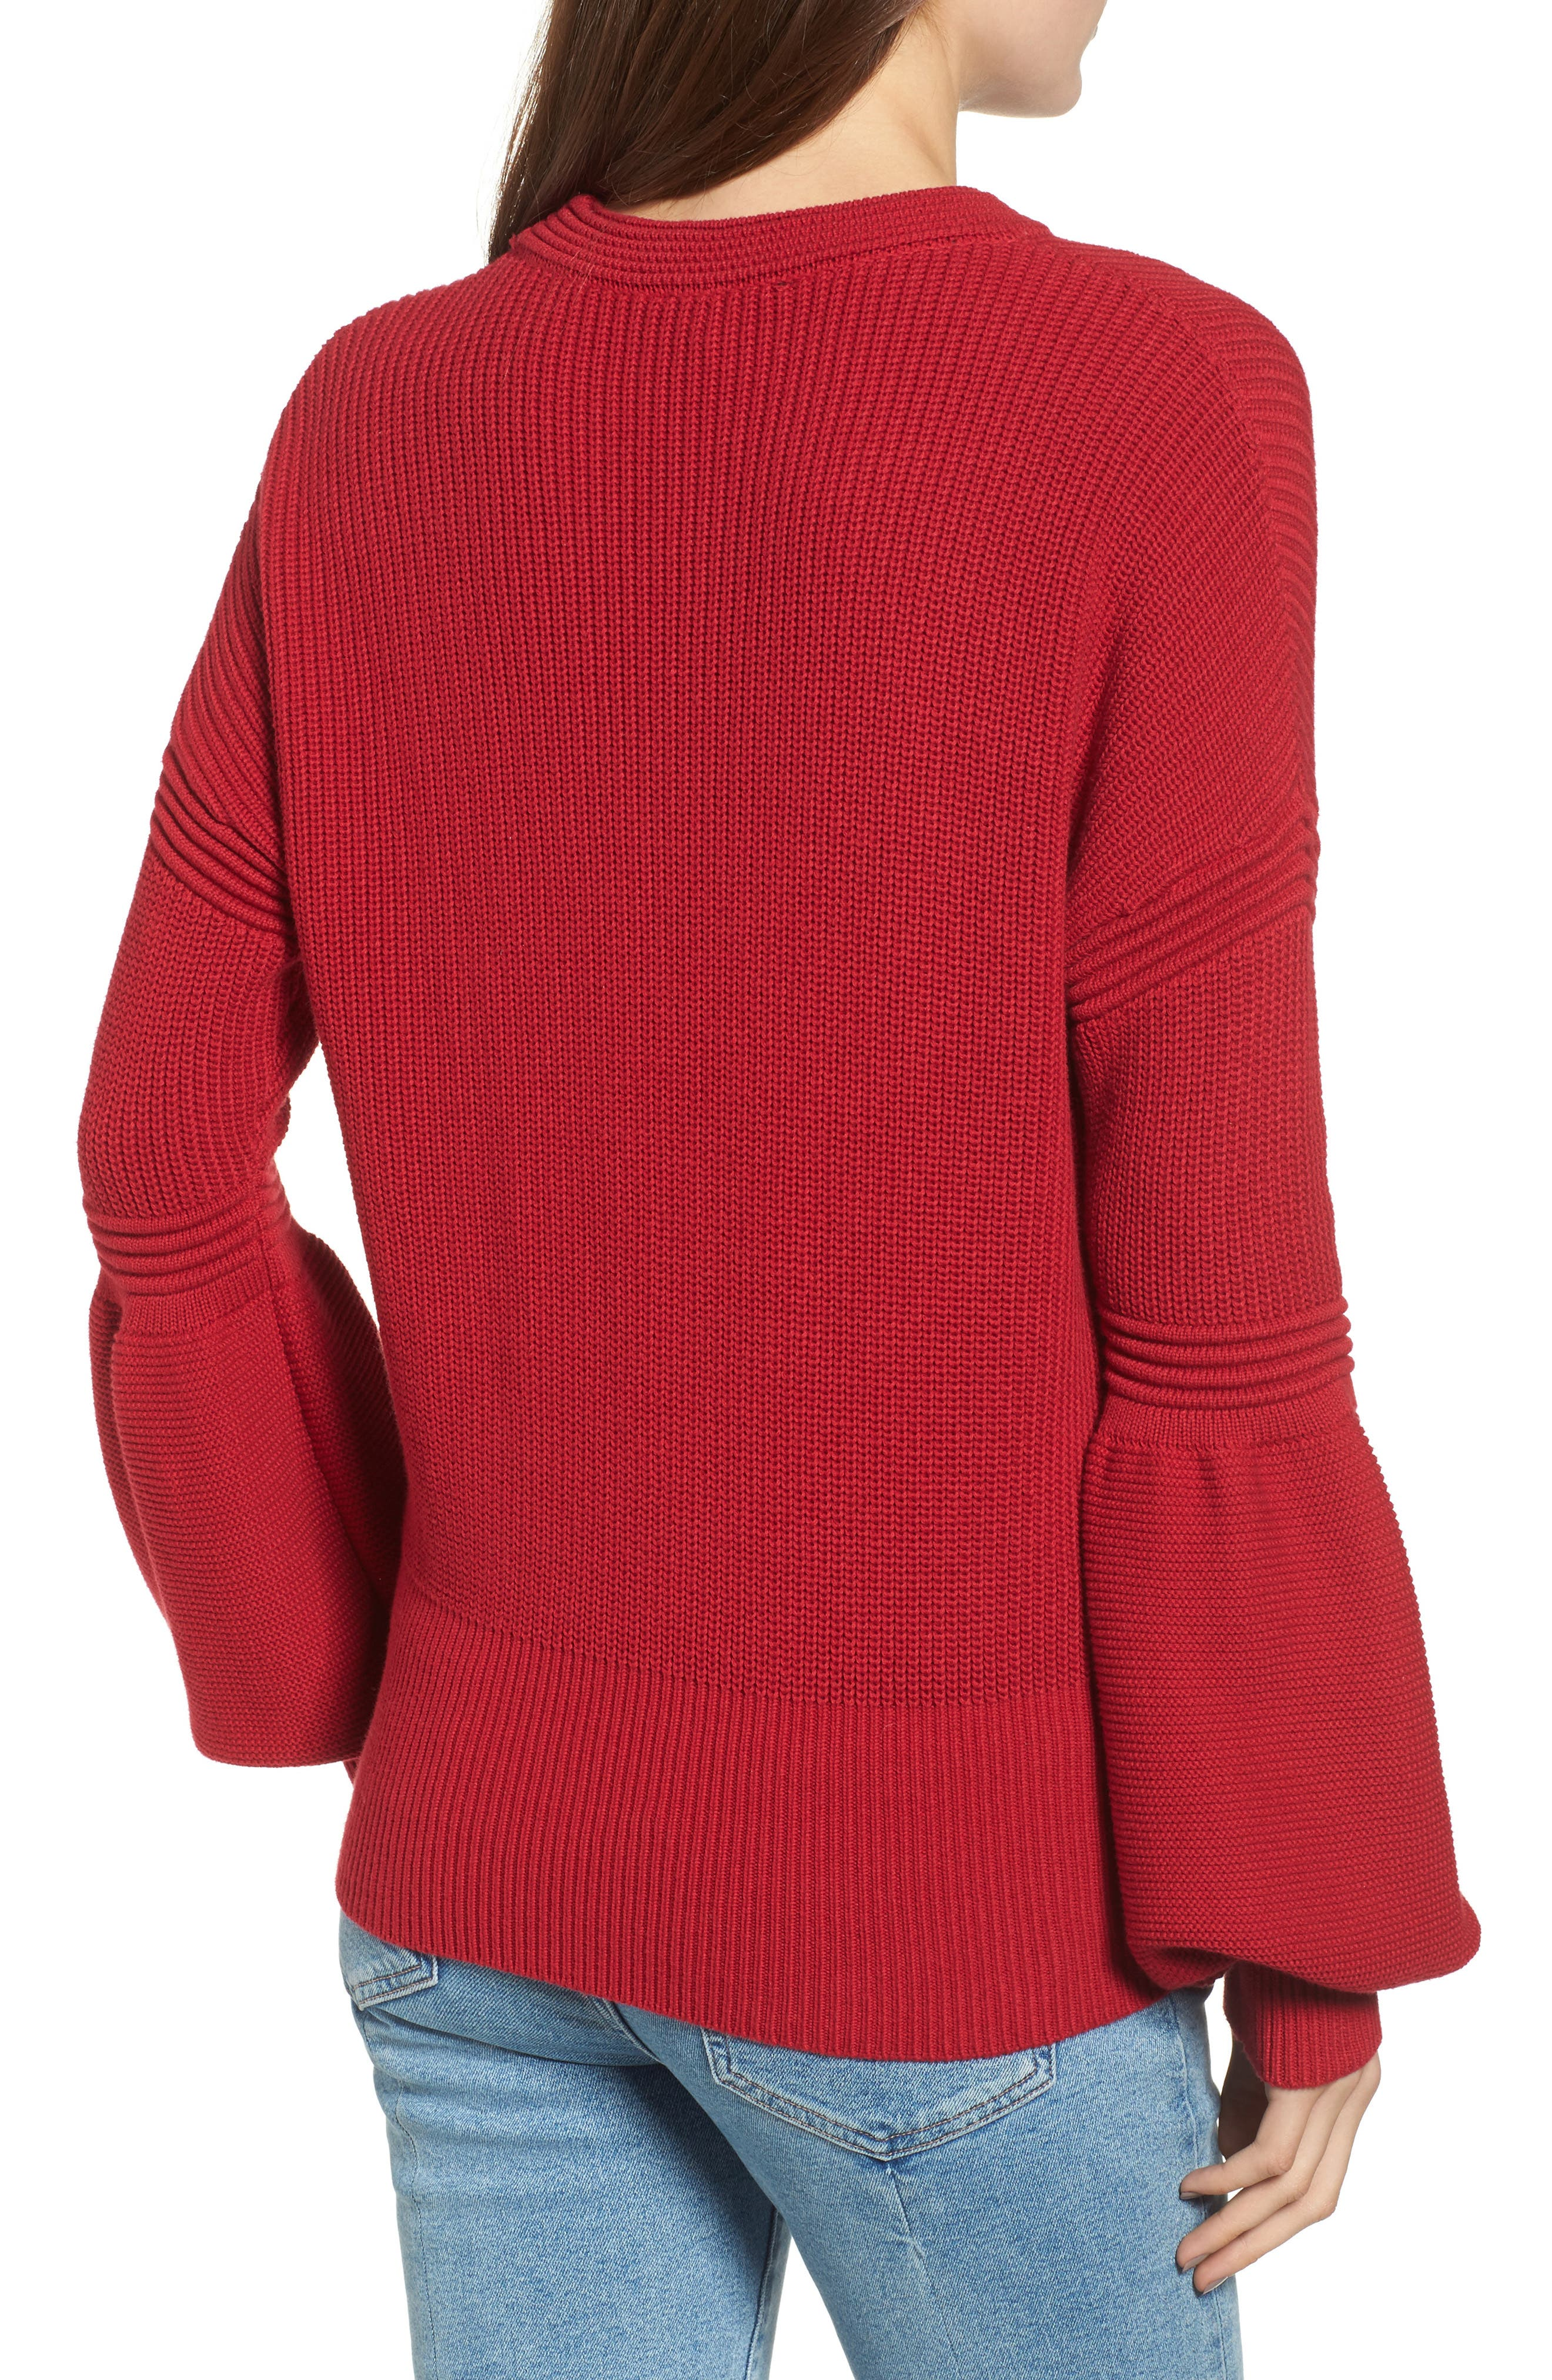 Sculpture Puff Sleeve Sweater,                             Alternate thumbnail 2, color,                             Red